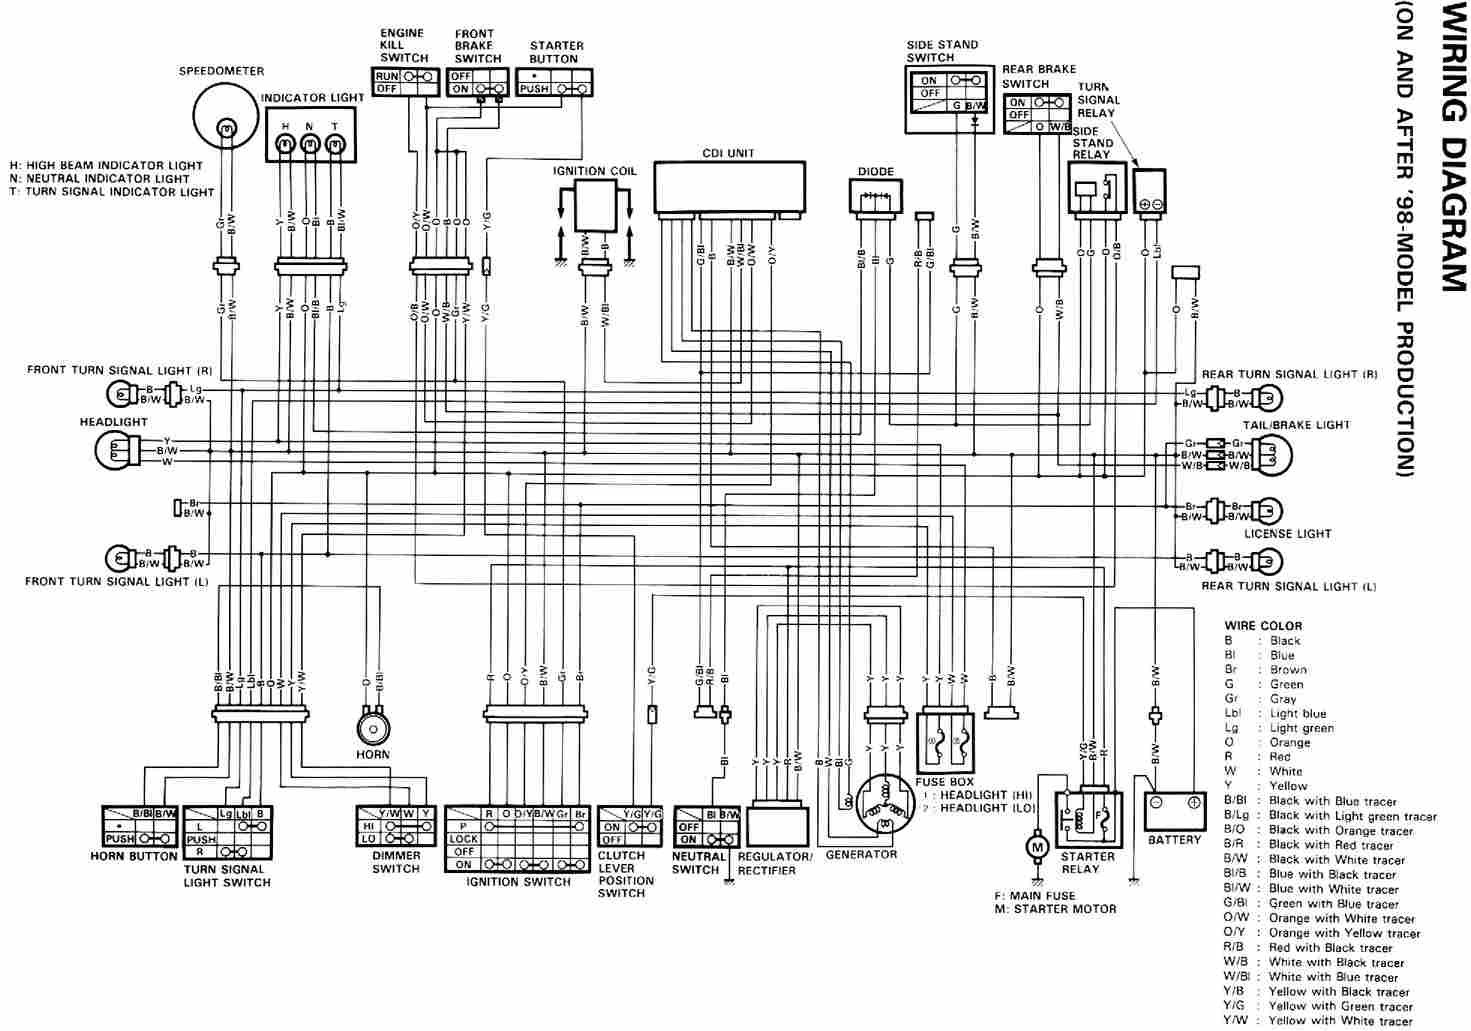 Suzuki Dr650 Motorcycle Wiring Diagram